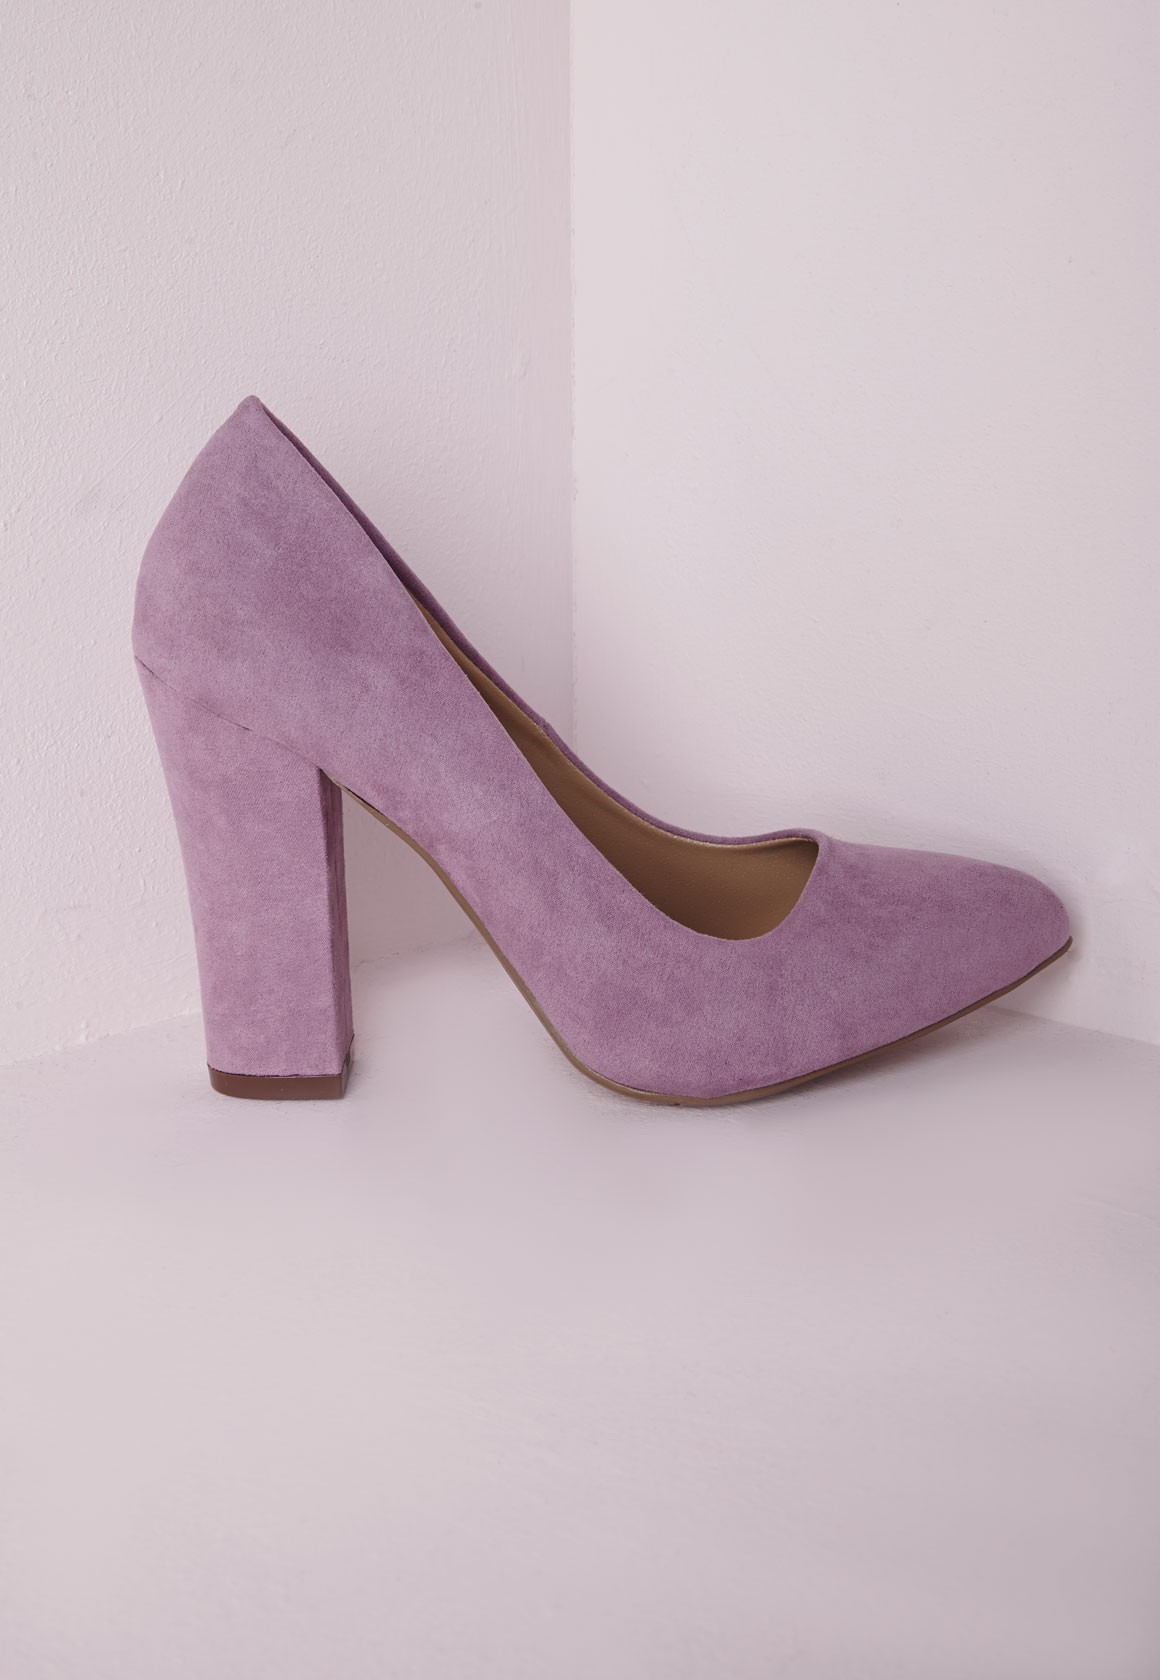 2887b01a32fc Lyst - Missguided Block Heel Court Shoes Lilac in Purple